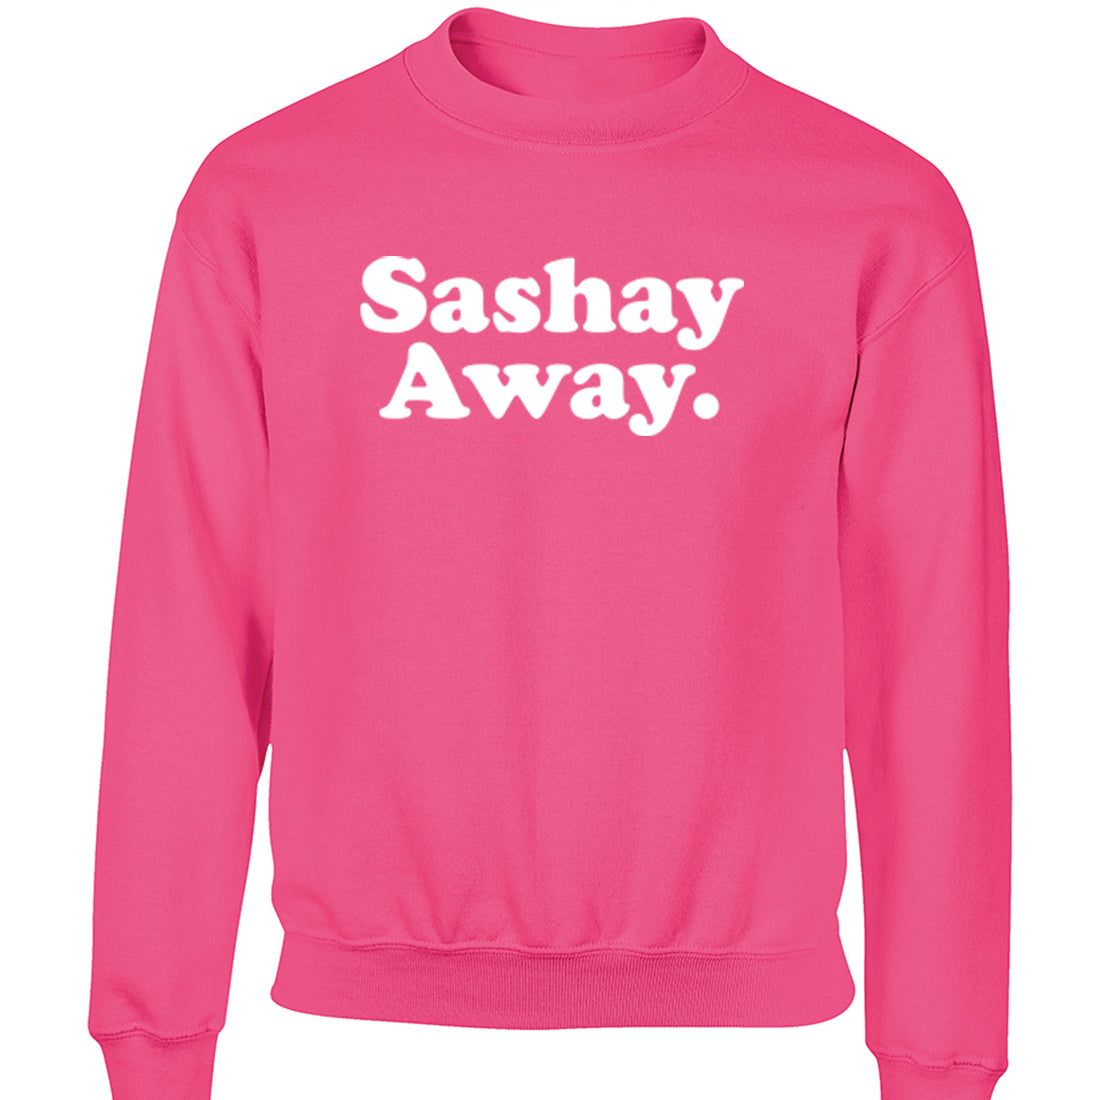 Sashay Away Childrens Ages 3/4-12/14 Unisex Jumper K2186 - Illustrated Identity Ltd.